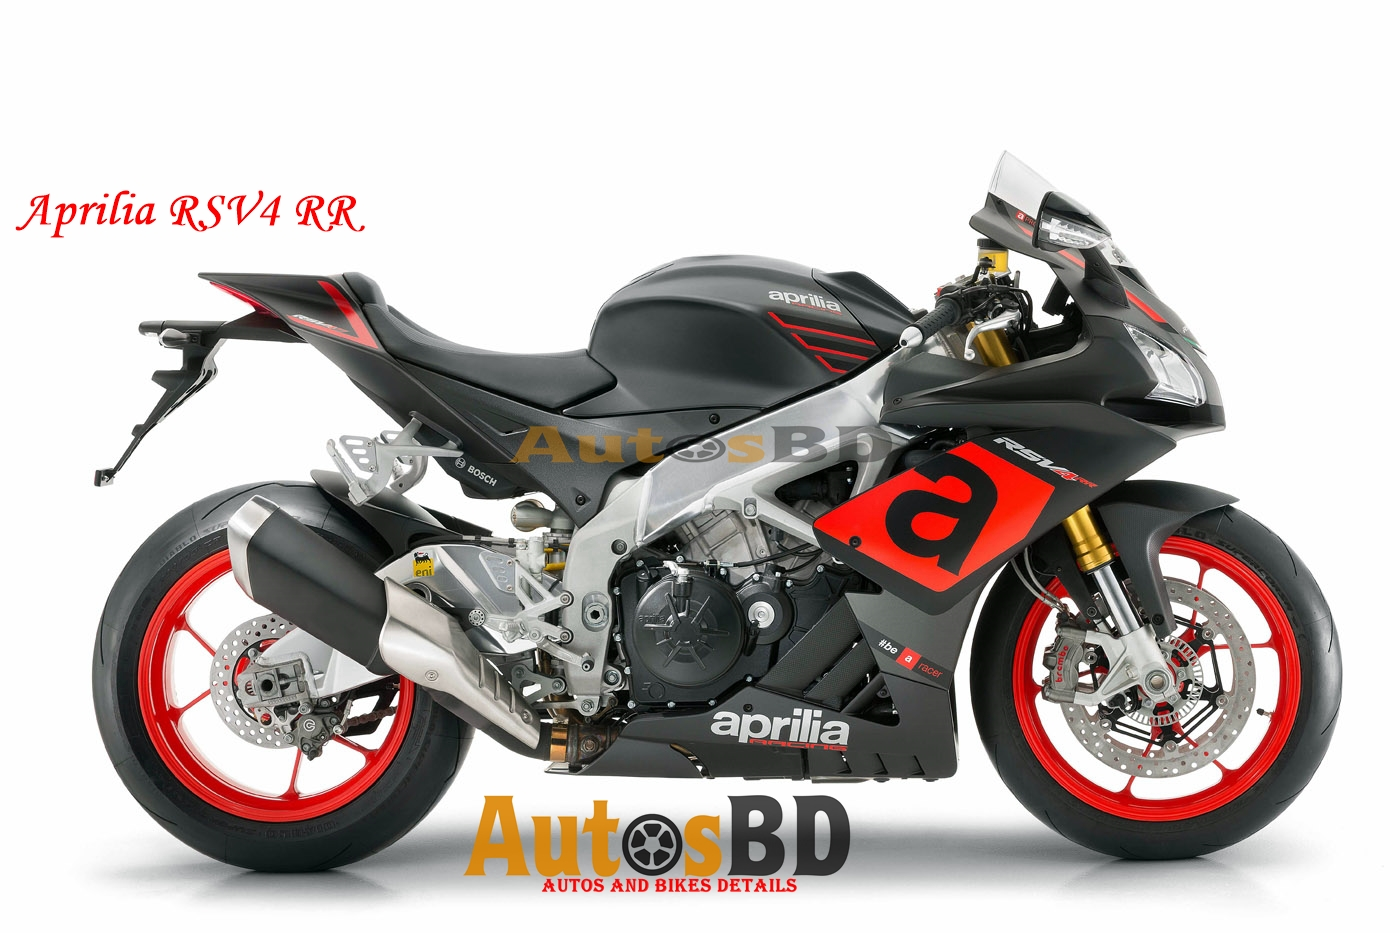 Aprilia RSV4 RR Motorcycle Price in India